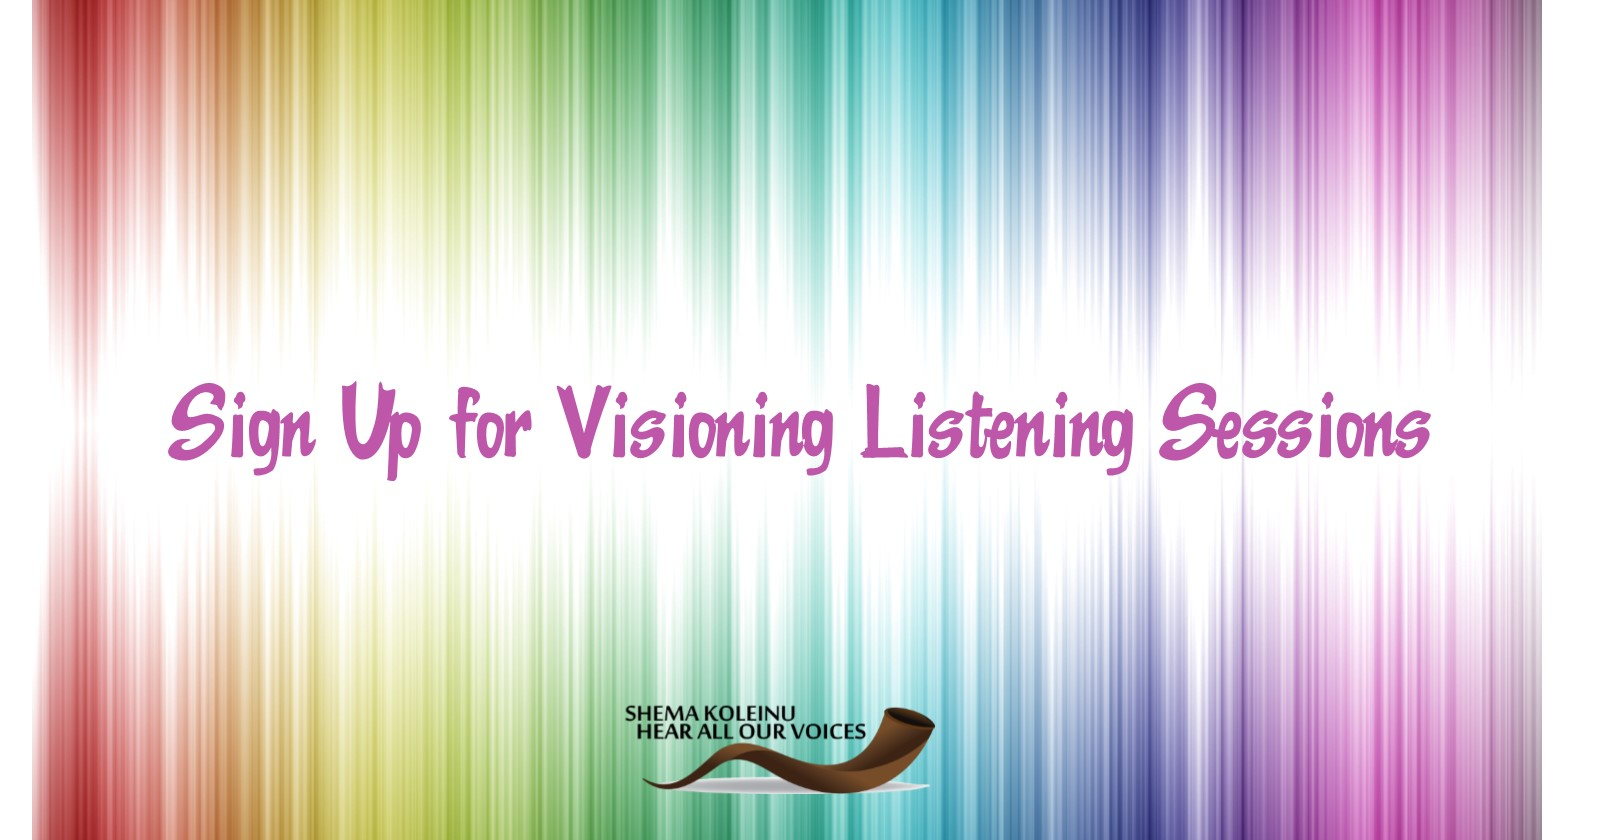 Visioning-listening-sessions